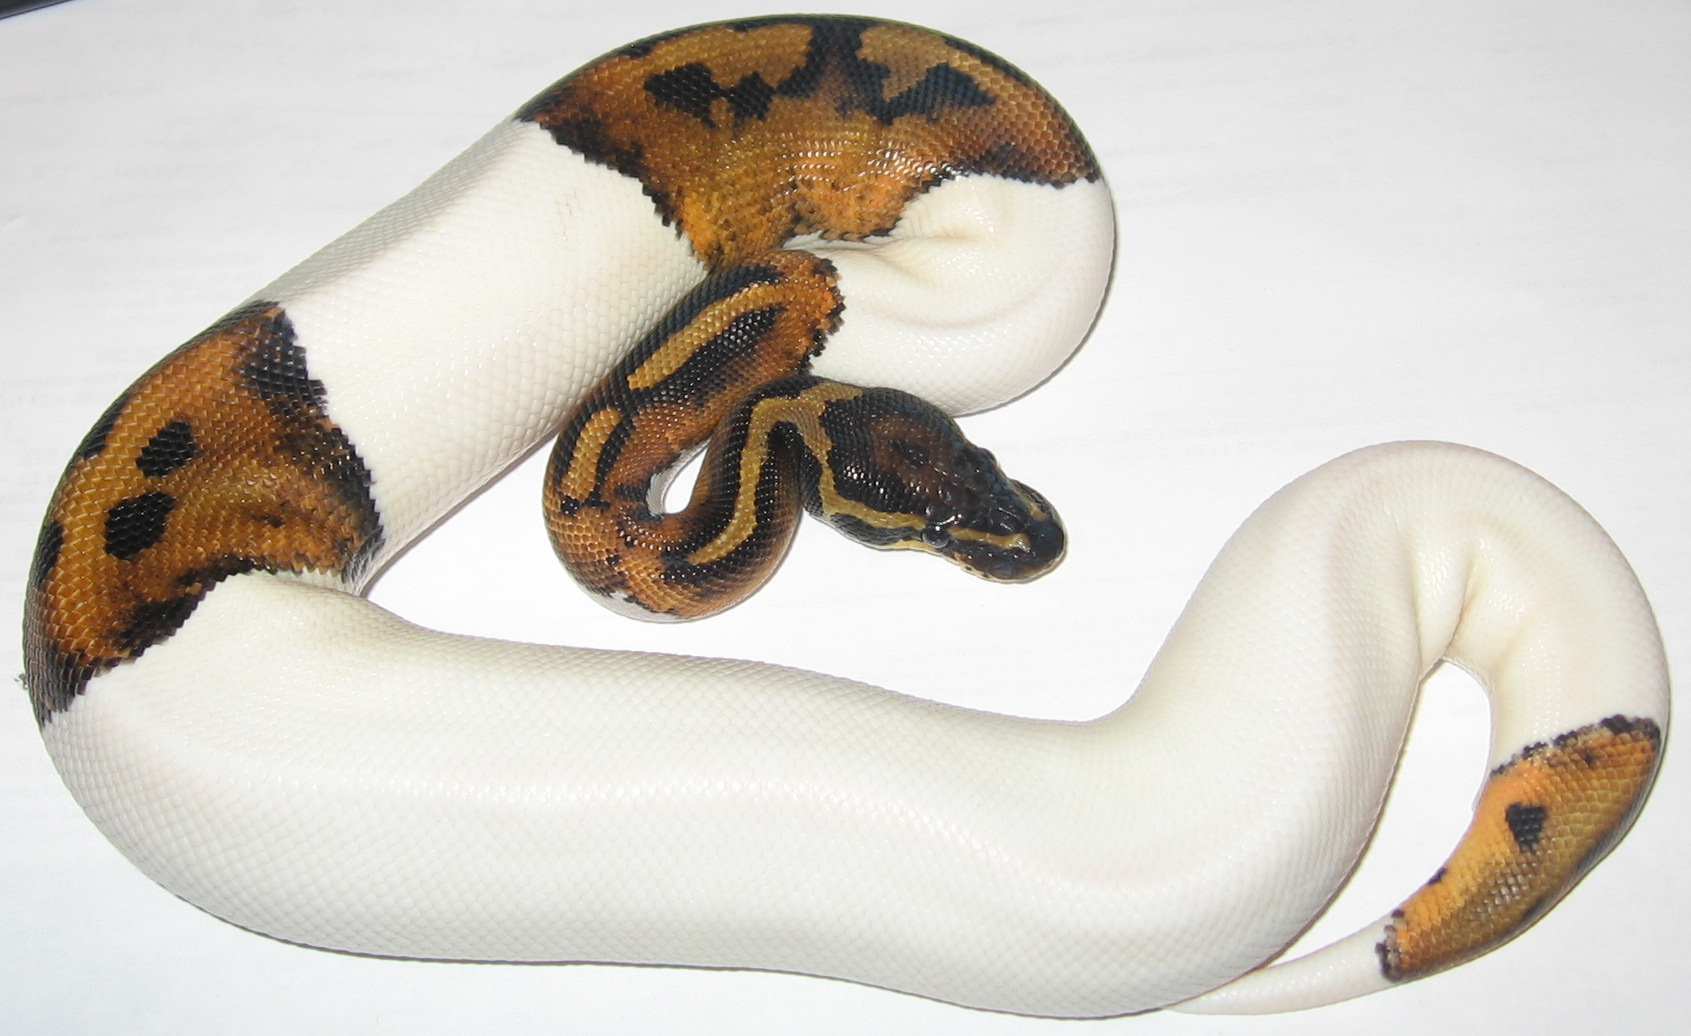 A piebald Ball Python.  Photograph courtesy Wikimedia Commons.